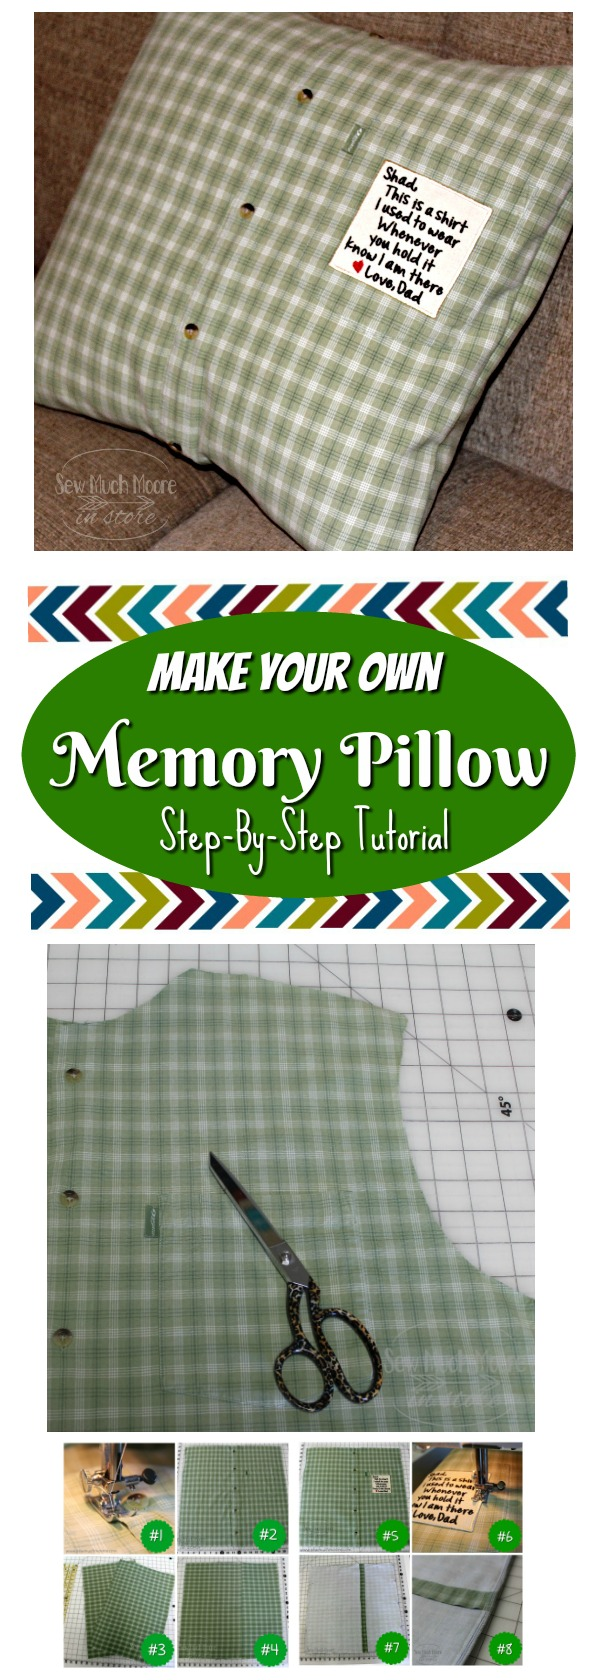 Memory Pillow Pinterest Pin